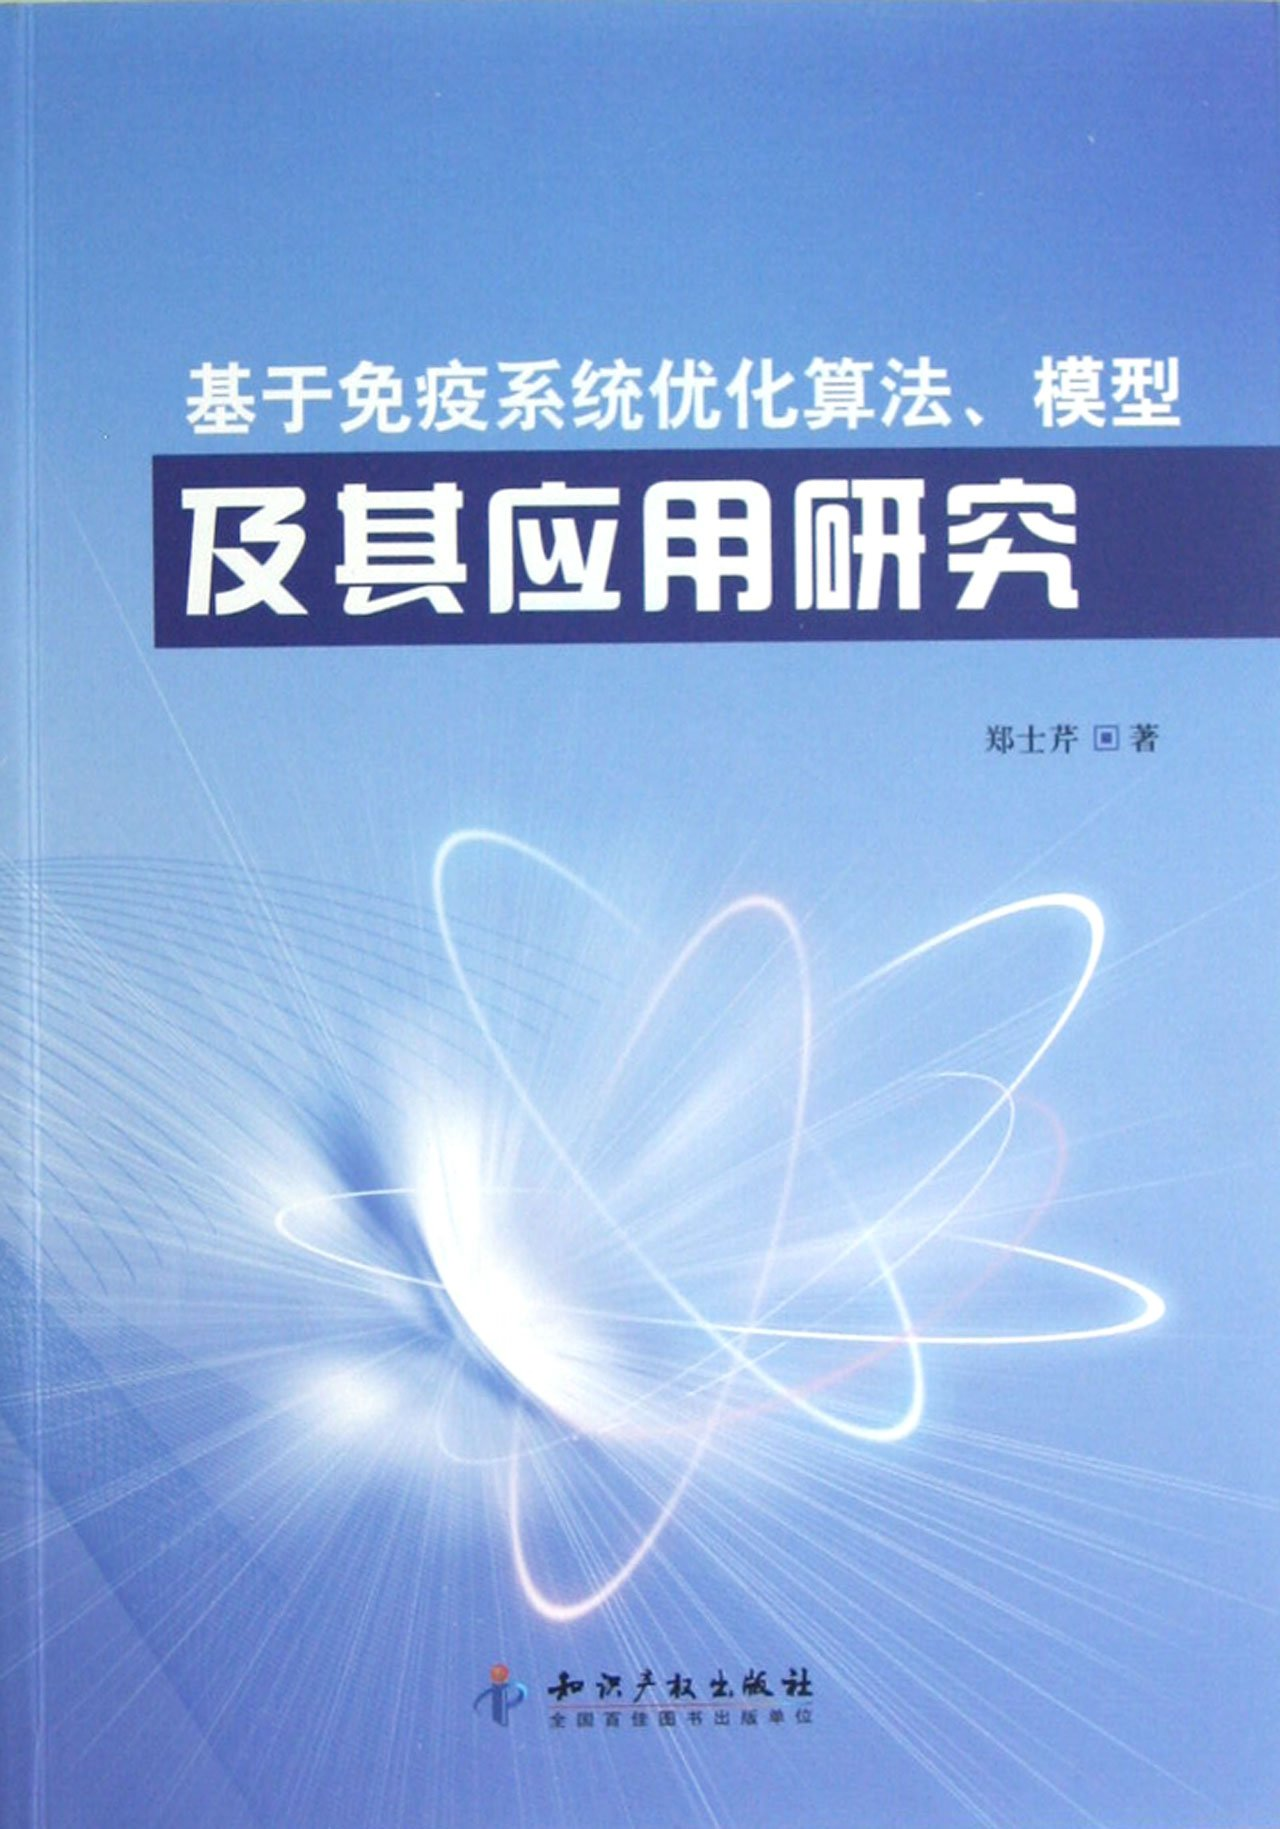 Read Online Optimization Algorithm Based on Immune System. Research of the Mode and the Application (Chinese Edition) pdf